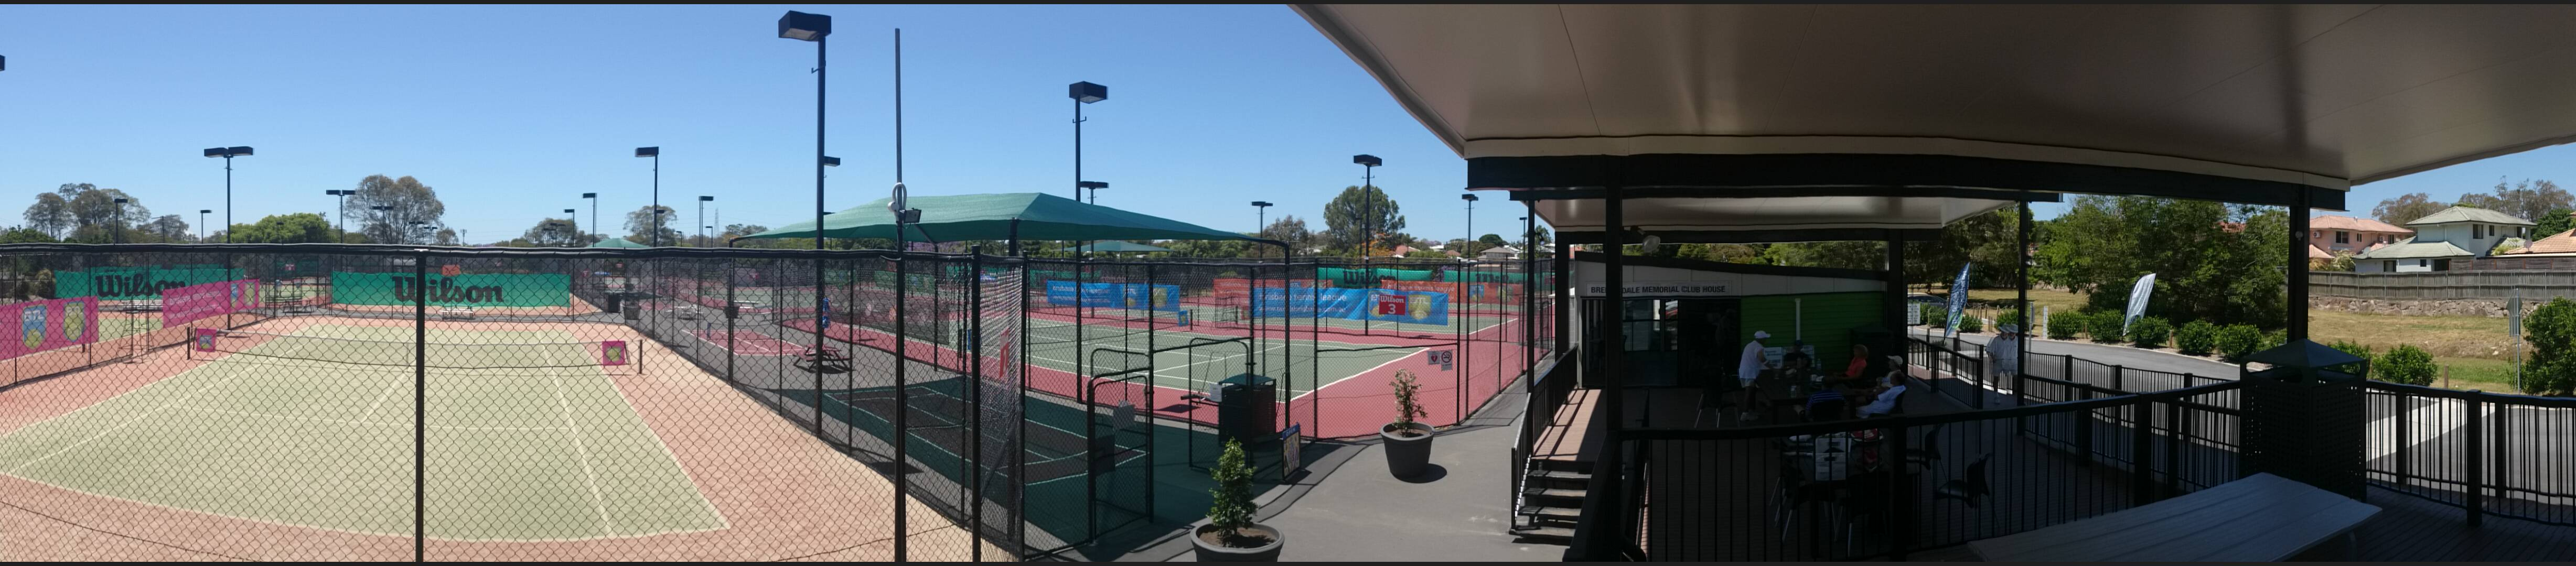 The Morningside Tennis Centre is a 12 court tennis club located just 10 minutes from the Brisbane city